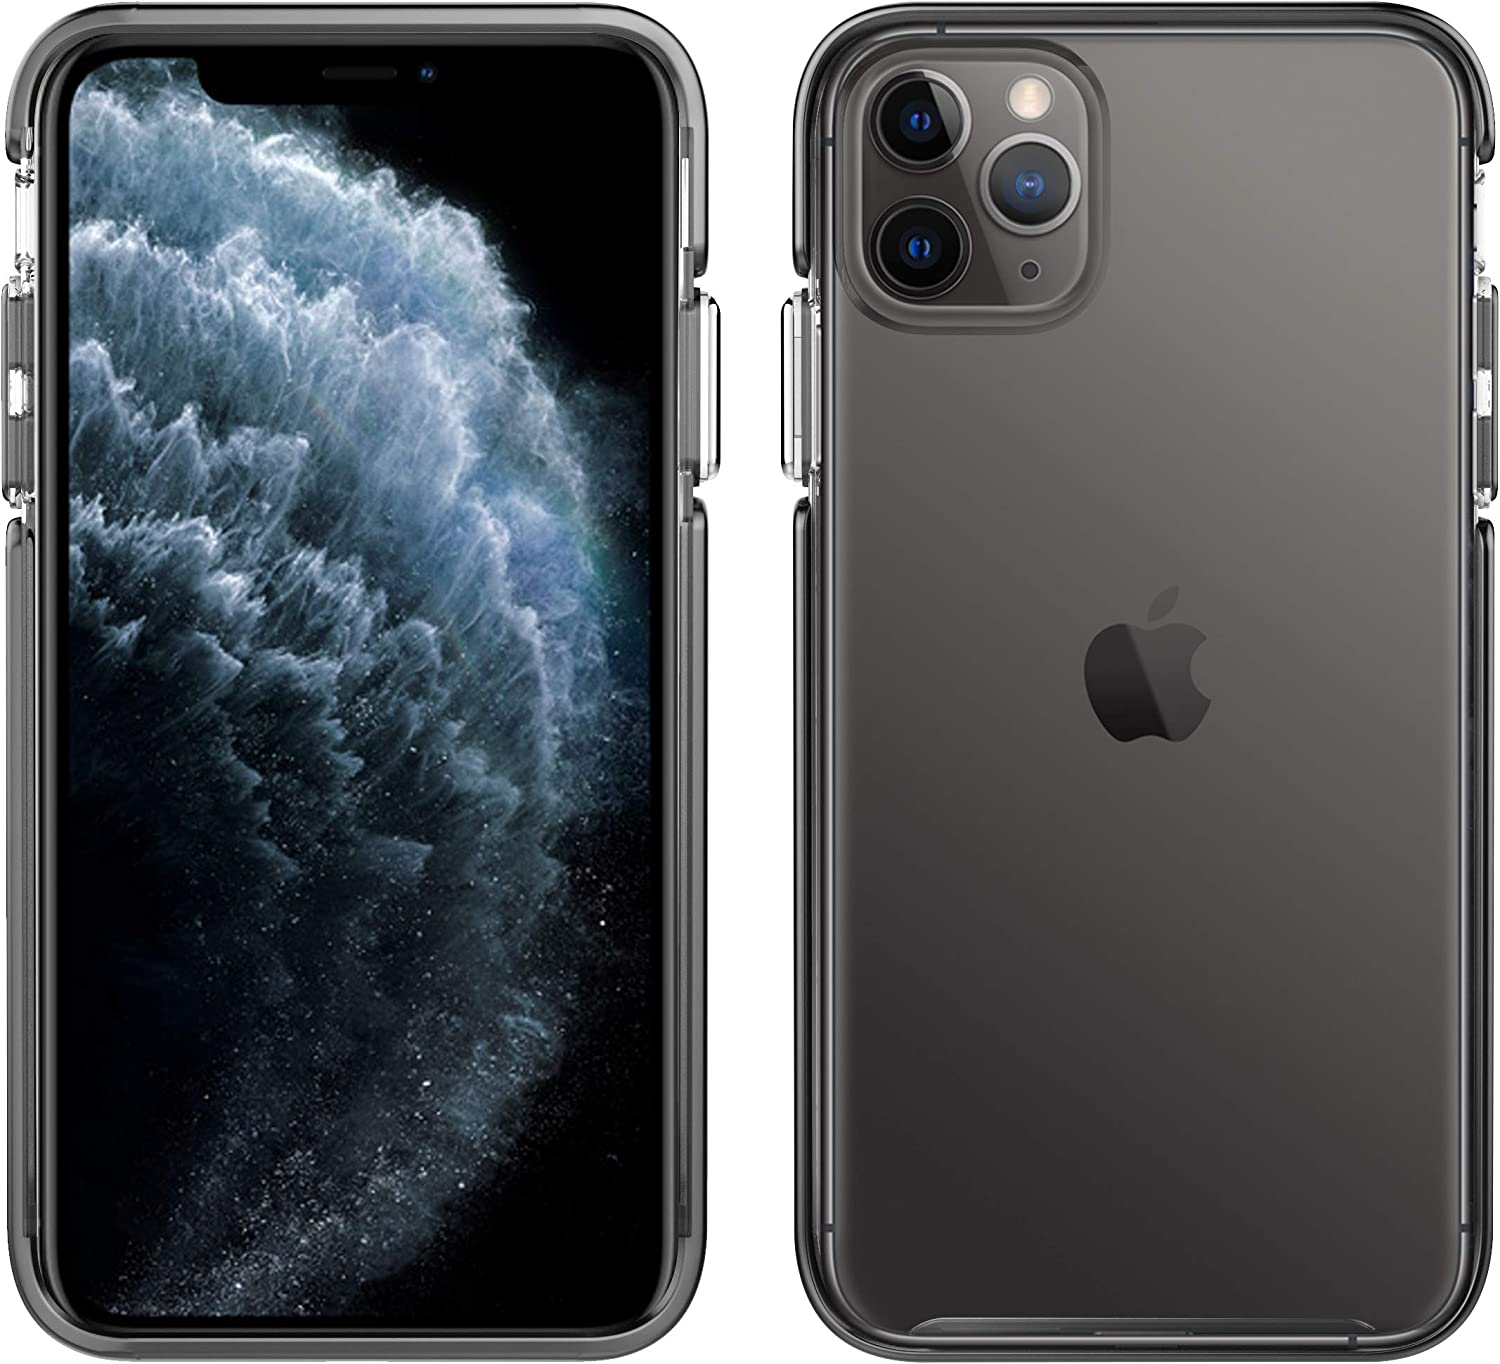 Pelican iPhone 11 Pro Max Case, Ambassador Series – Military Grade Drop Tested – TPU, HPX, Aluminum Protective Case for Apple iPhone 11 Pro Max (Clear/Black with Silver Button) (C57130-001A-CLBS)